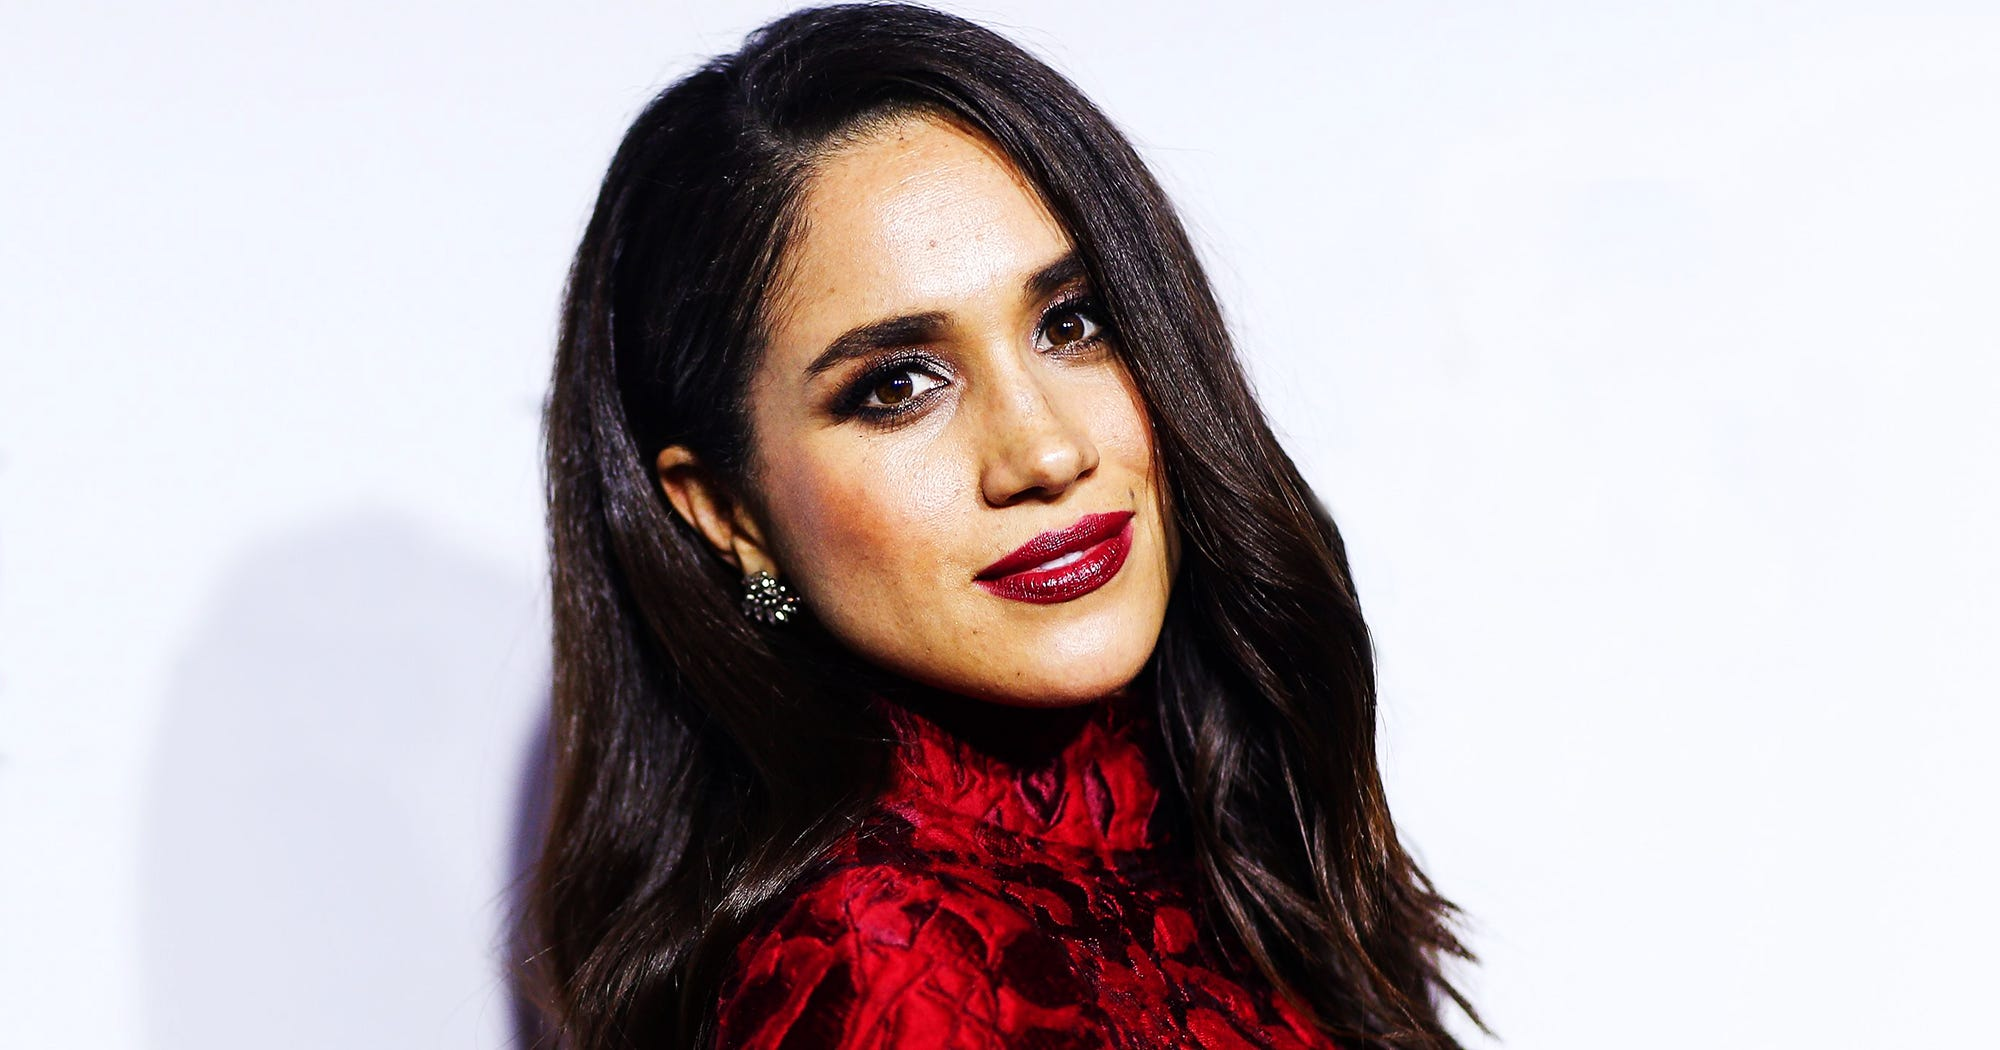 hispanic singles in hollywood Quickfacts florida quickfacts provides statistics for all states and counties, and for cities and towns with a population of 5,000 or  not hispanic or latino,.